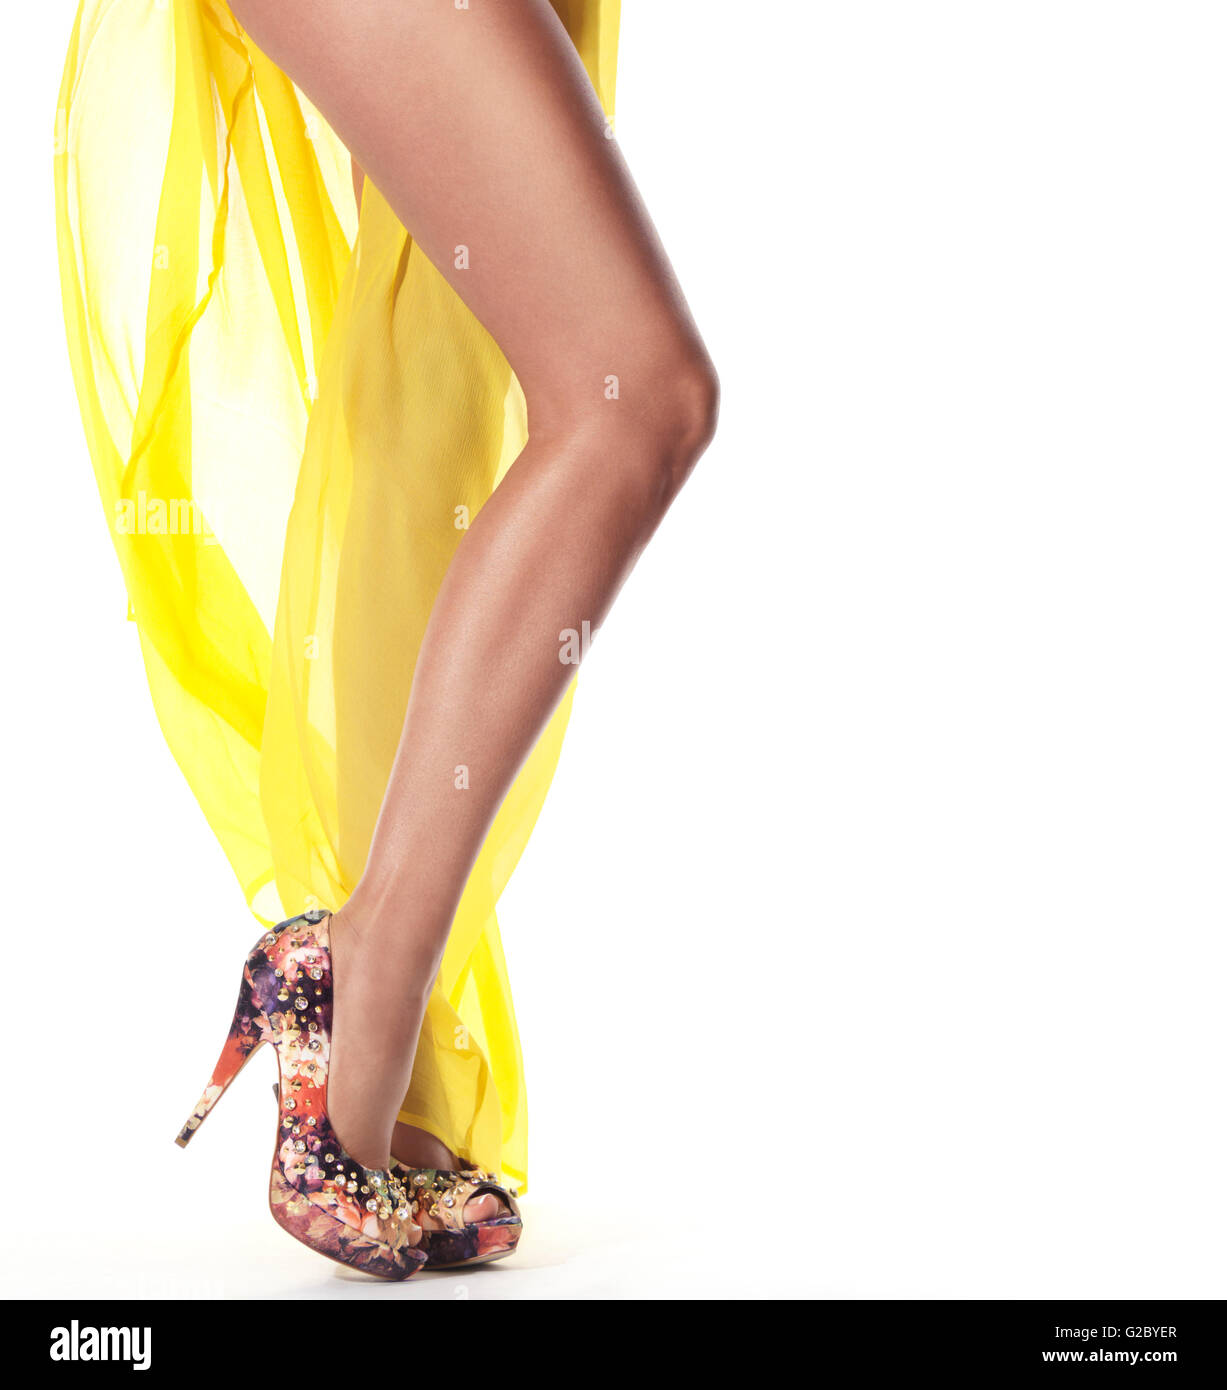 Legs of a woman wearing a yellow summer dress and high heels - Stock Image